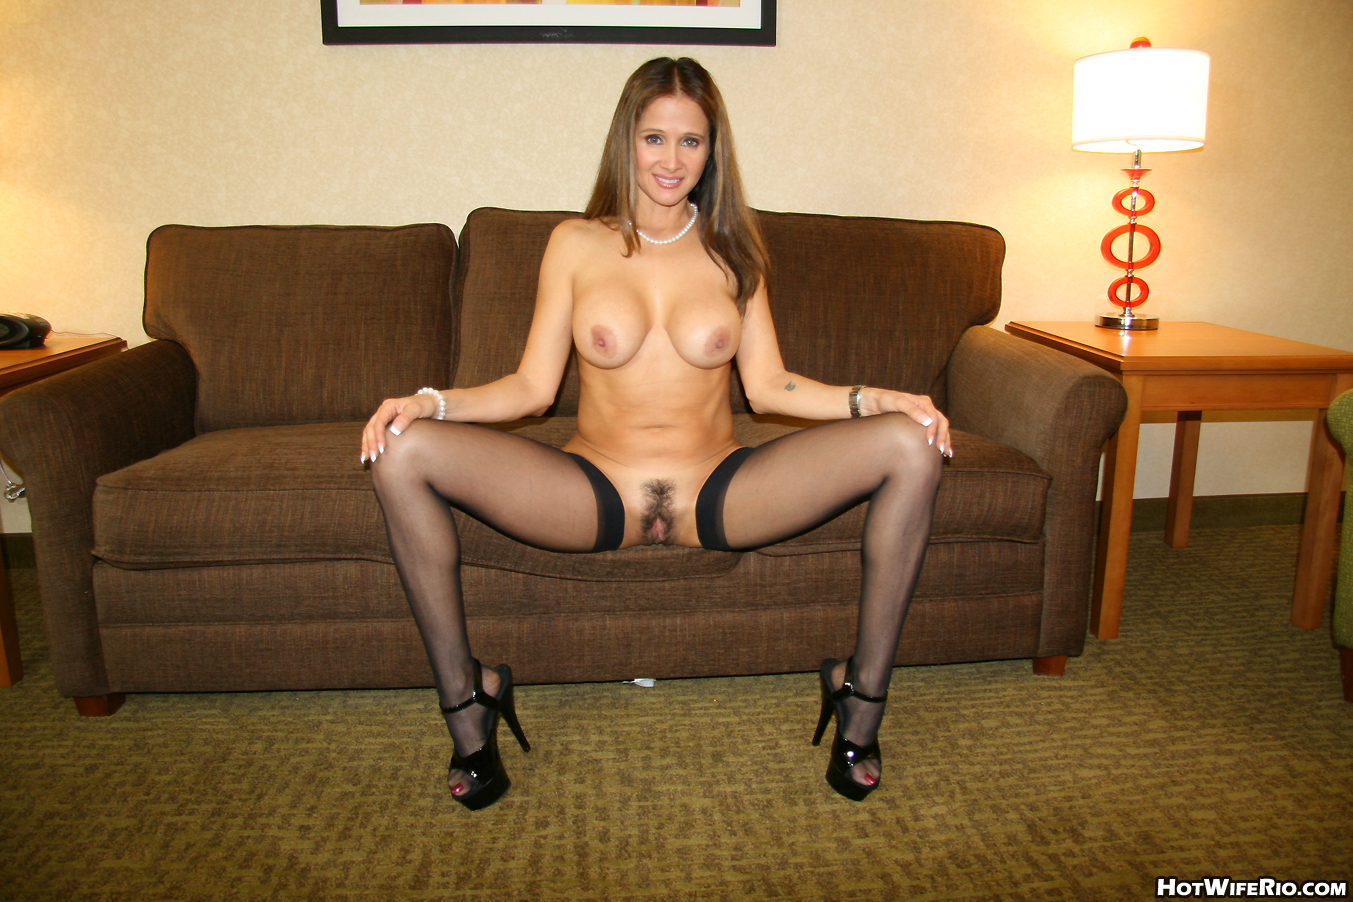 Hot wife rio nude